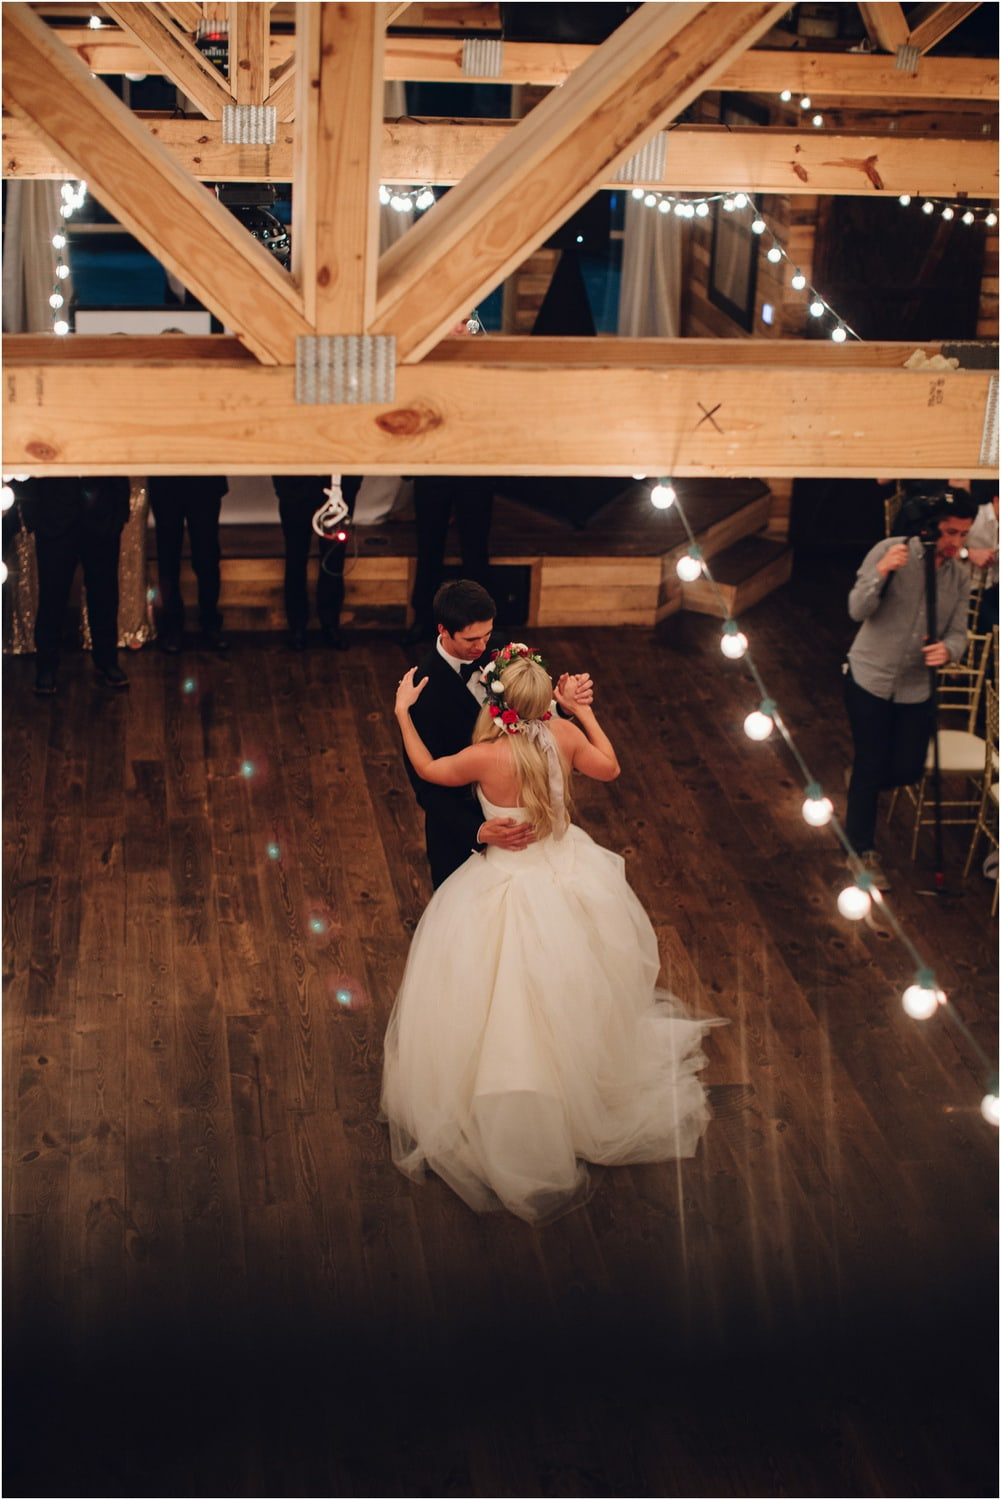 coderhillengburg_oklahoma_wedding__790_blogstomped